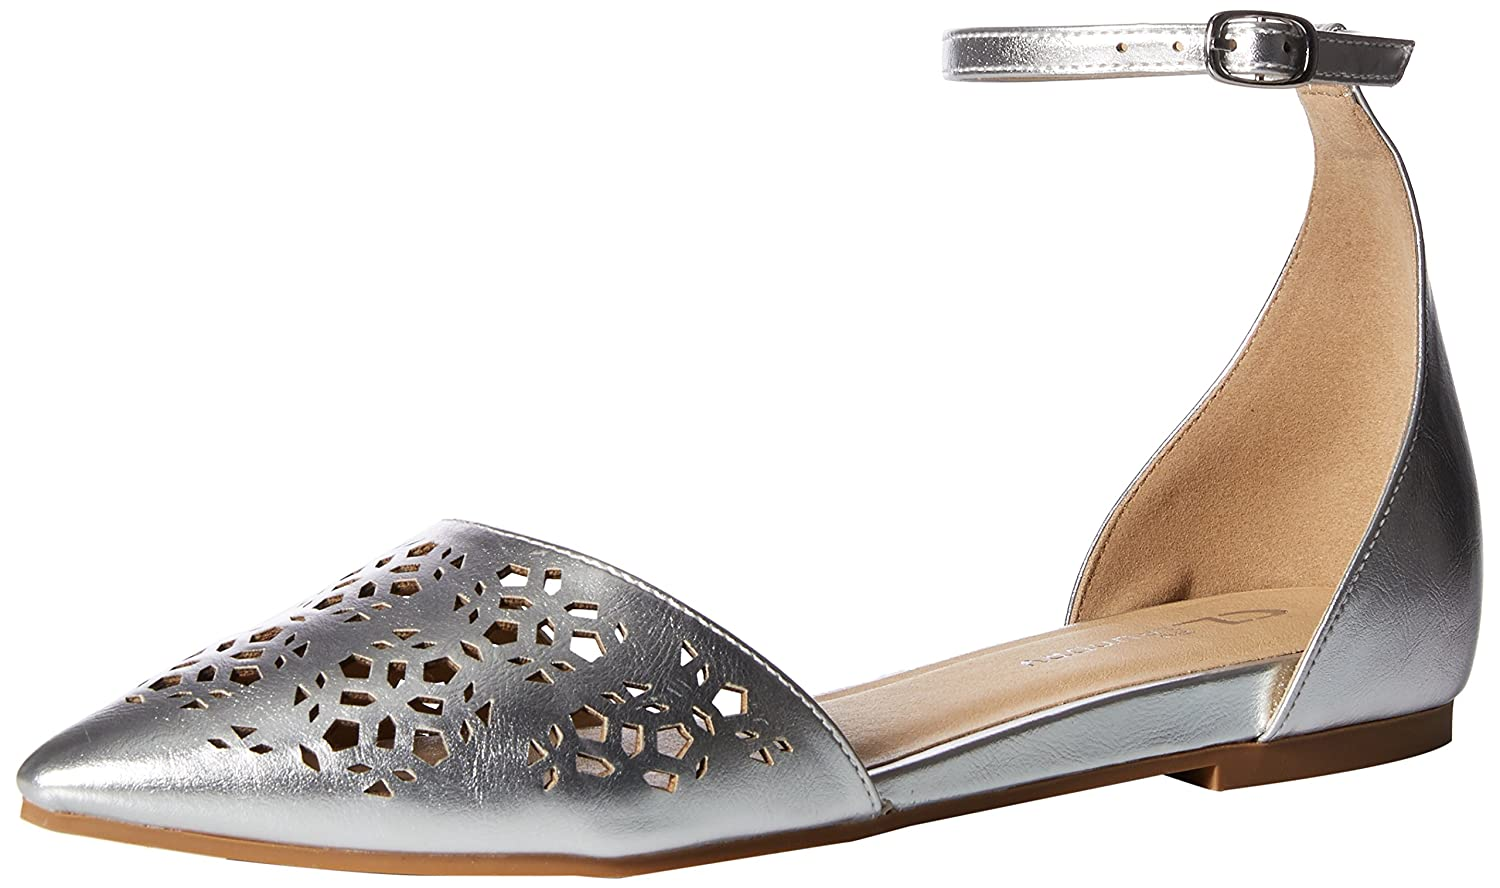 CL by Chinese Laundry Women's Hello Ballet Flat B076DX5G76 6 B(M) US|Silver/Metallic